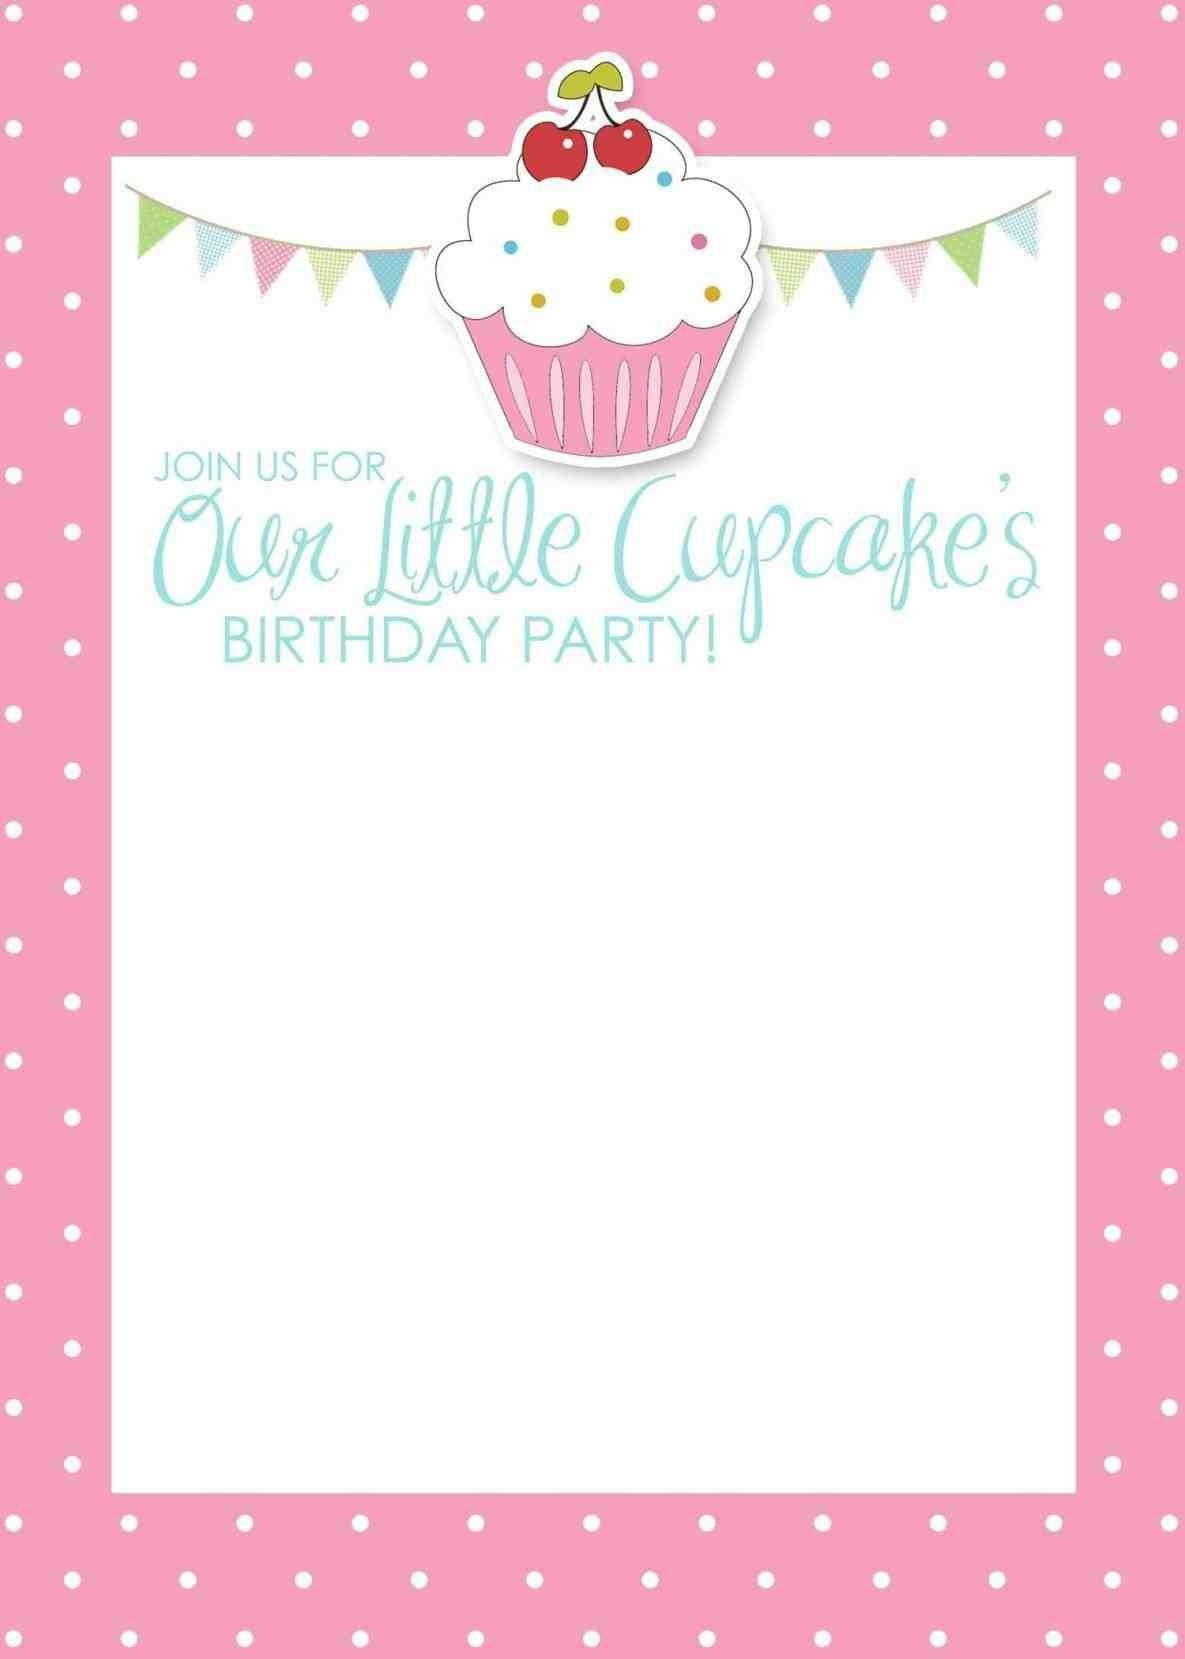 Bbq Birthday Party Invitation Wording. Dog Themed Birthday Party - Dog Birthday Invitations Free Printable